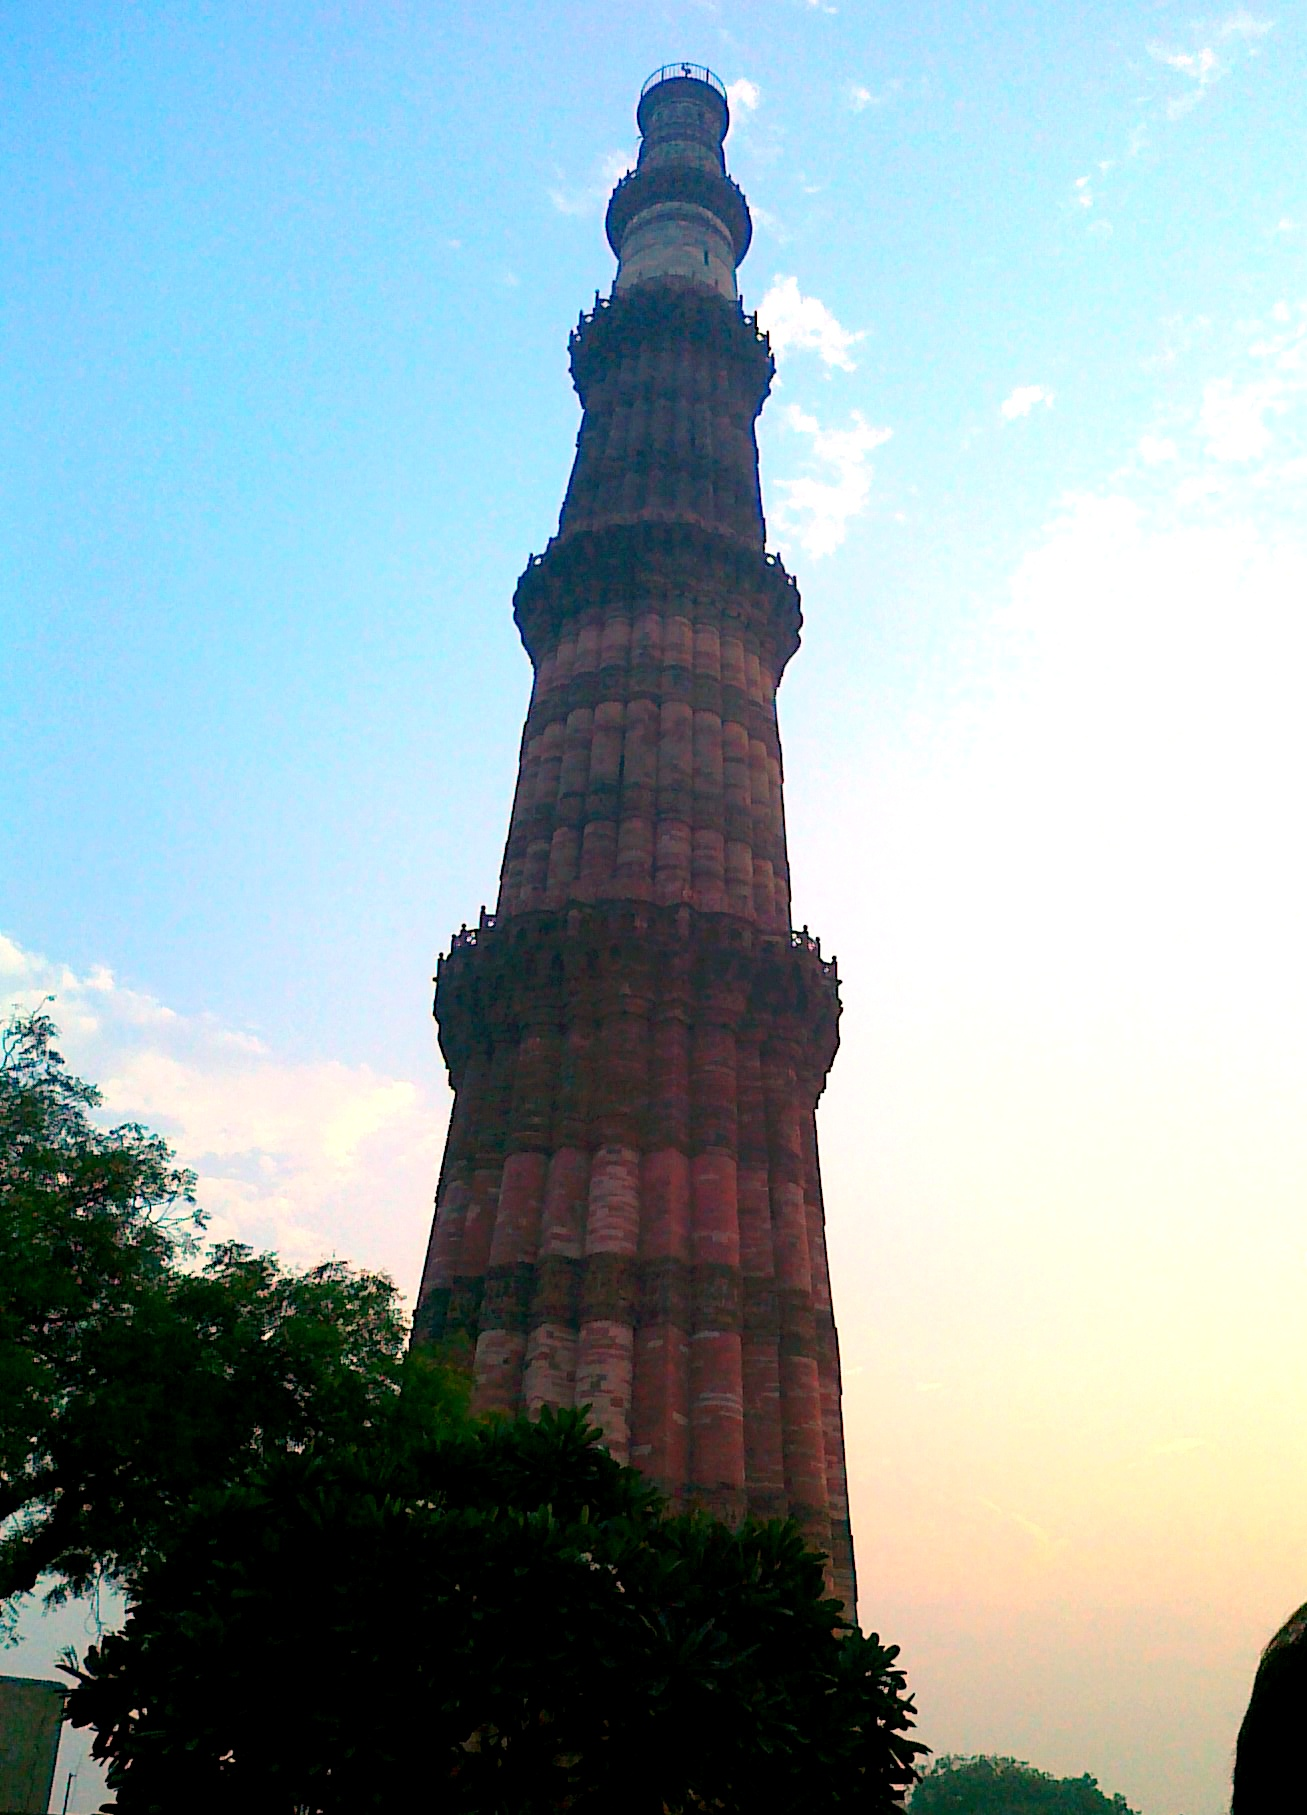 Qutb Minar and its Monuments, Delhi - India